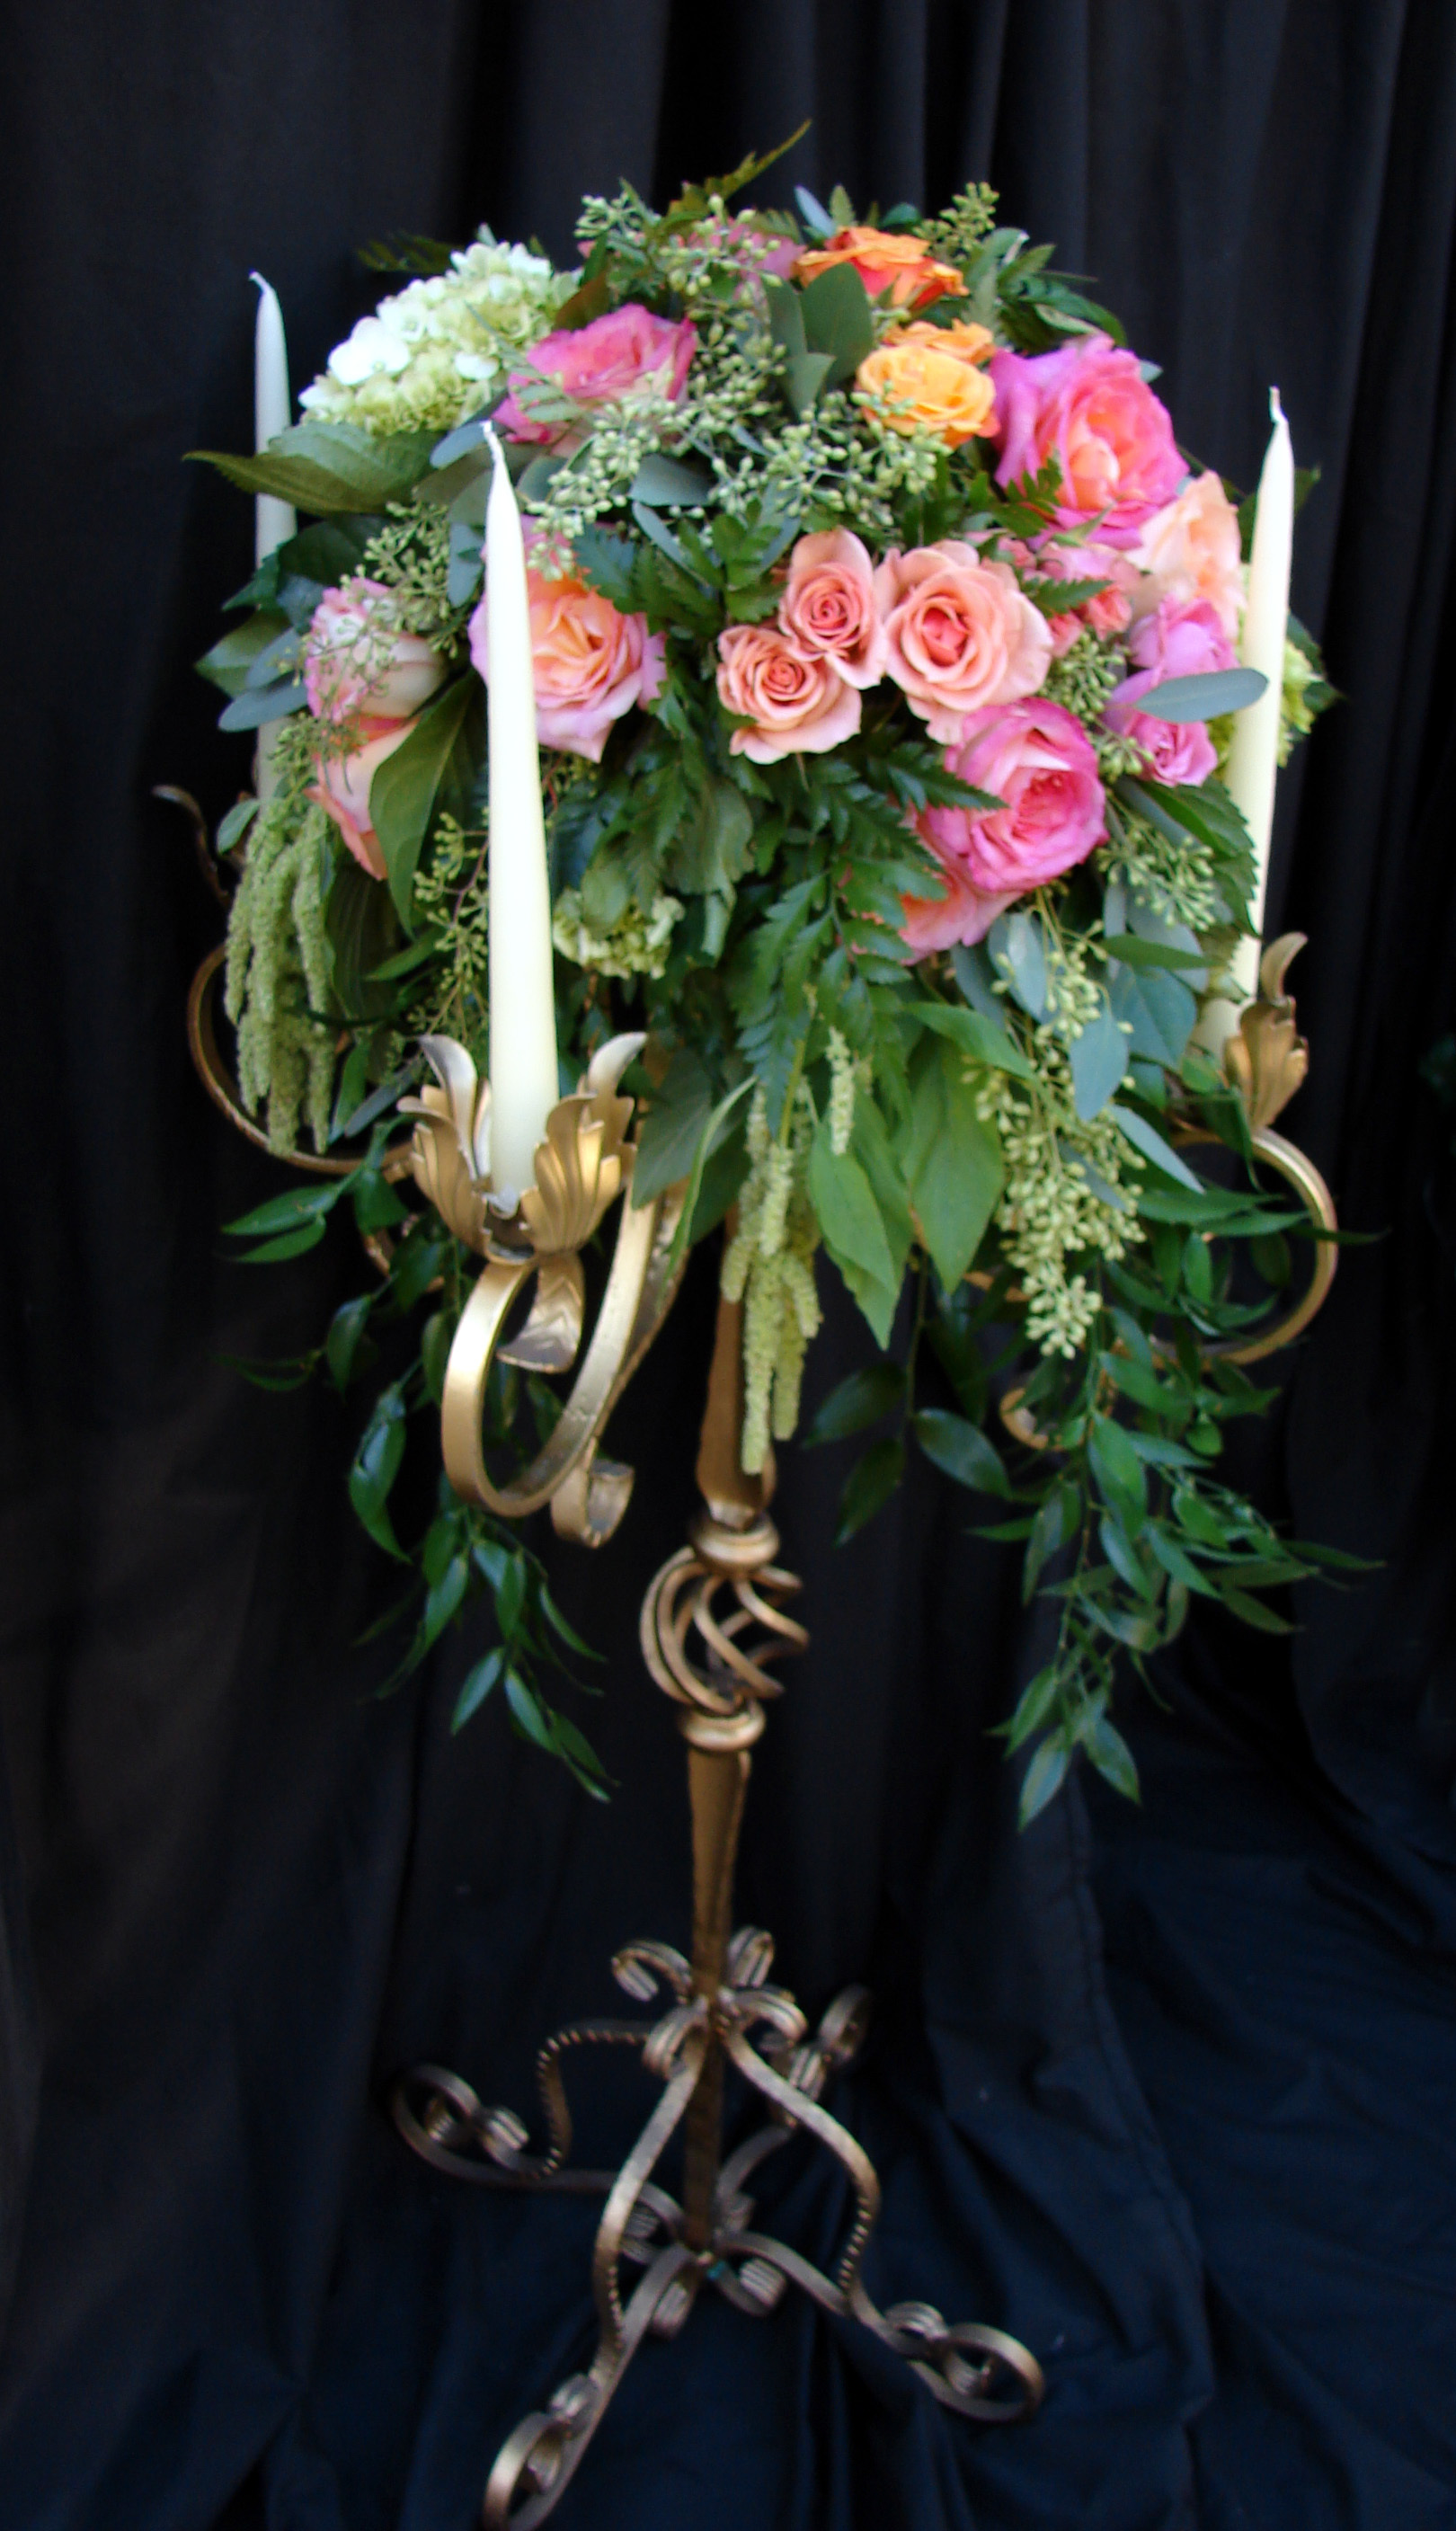 Flowers & Decor, Centerpieces, Flowers, Centerpiece, Tall, Candelabra, Crystals, Gardenpartytogocom